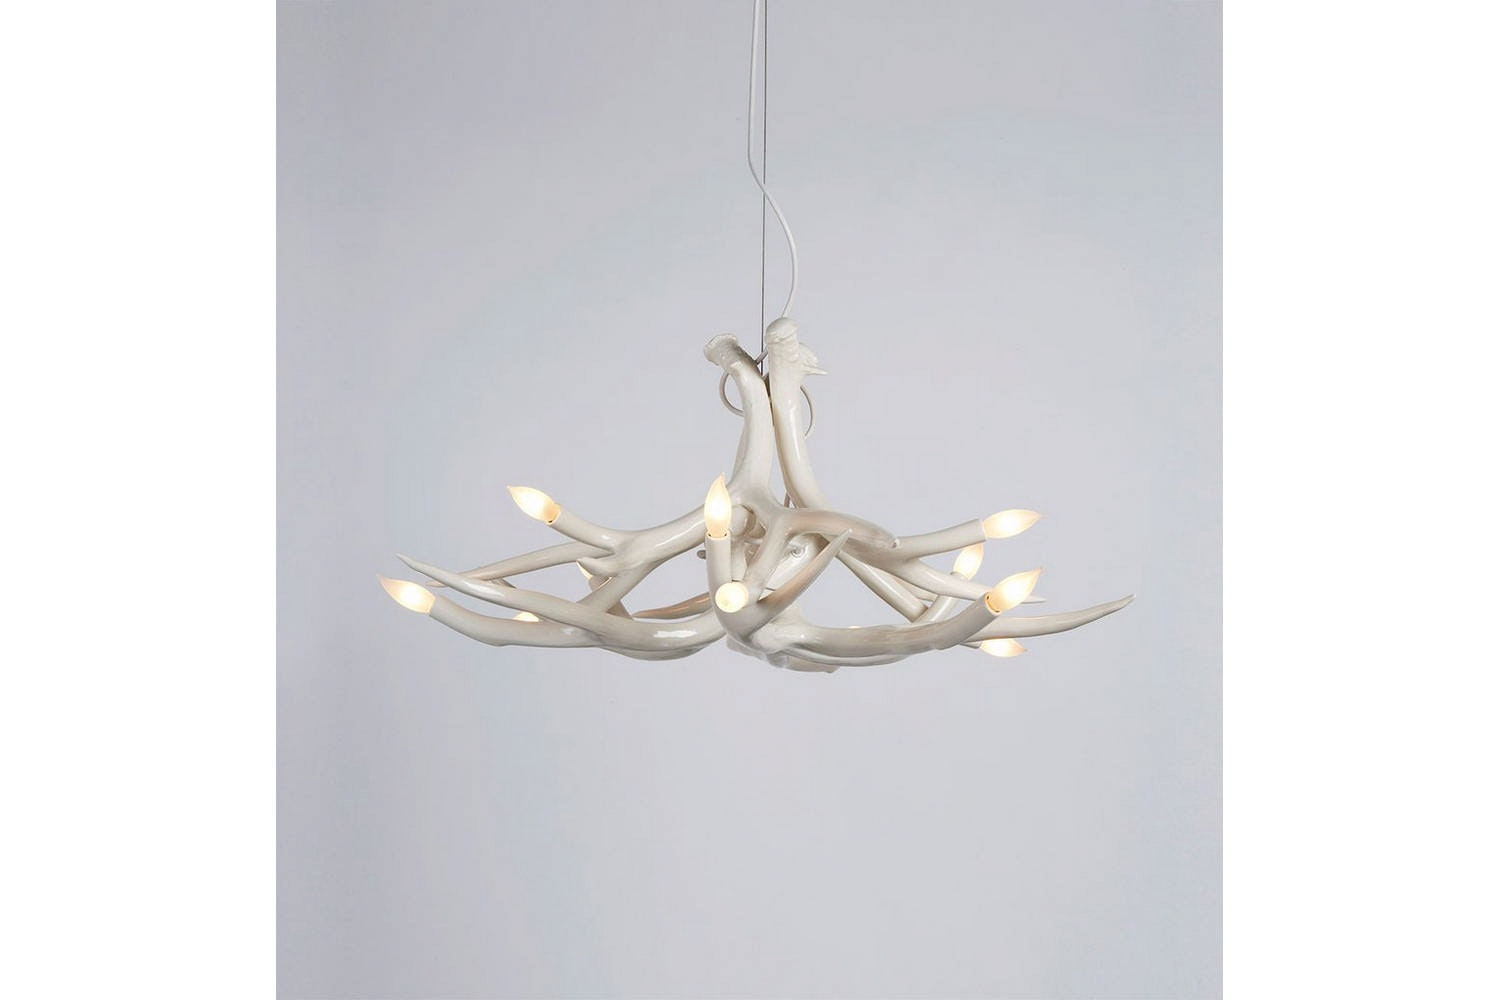 Superordinate Antler Chandelier - 6 Antlers by Jason Miller for Roll & Hill